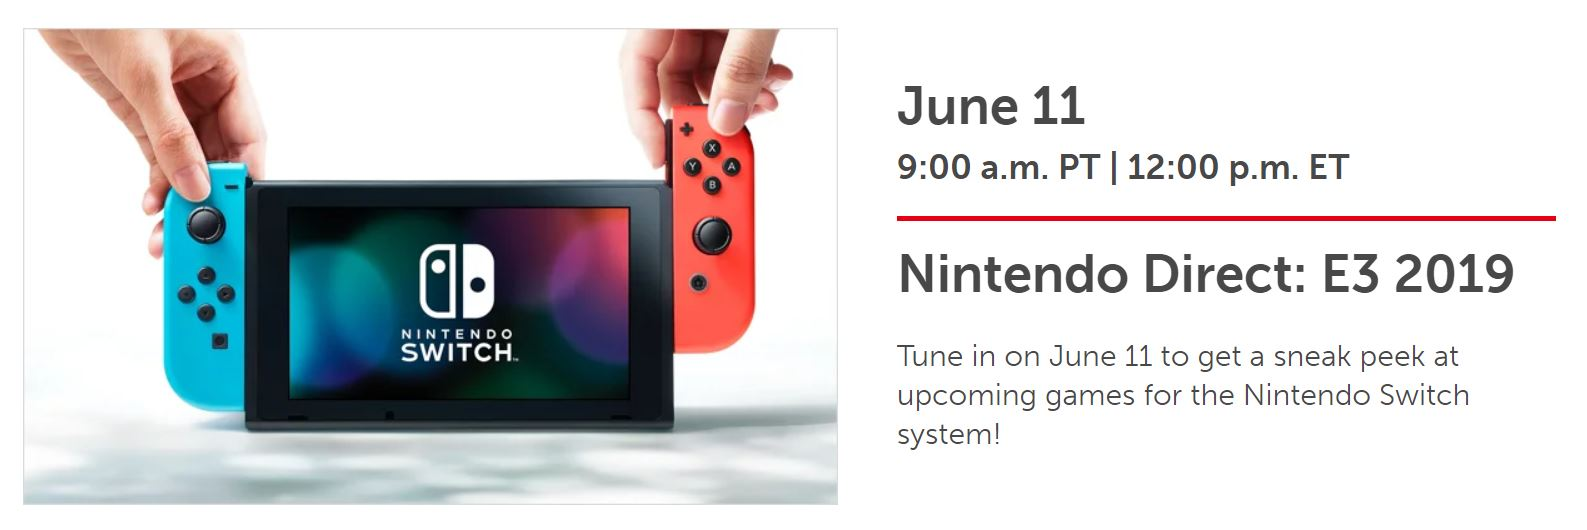 Nintendo To Hold The E3 2019 Nintendo Direct On June 11, Followed By